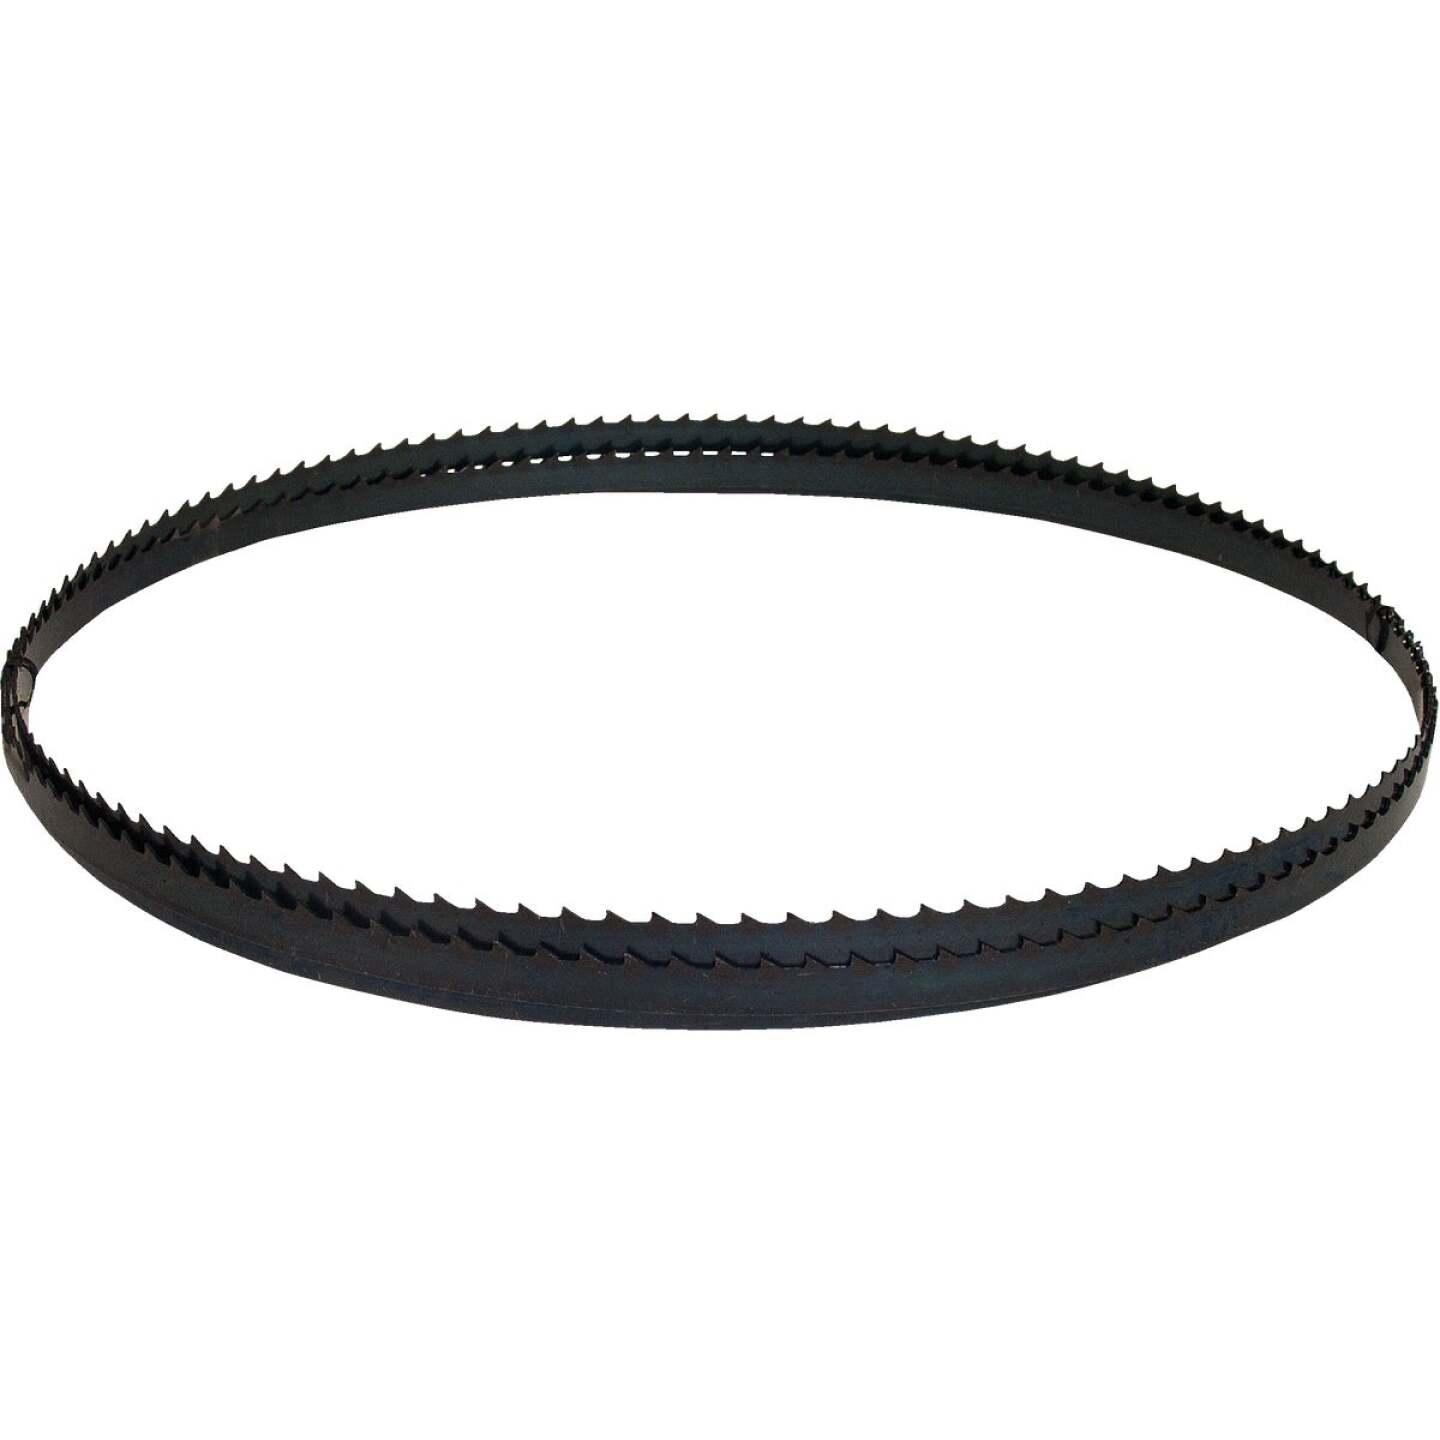 Olson 93-1/2 In. x 3/8 In. 4 TPI Skip Flex Back Band Saw Blade Image 2